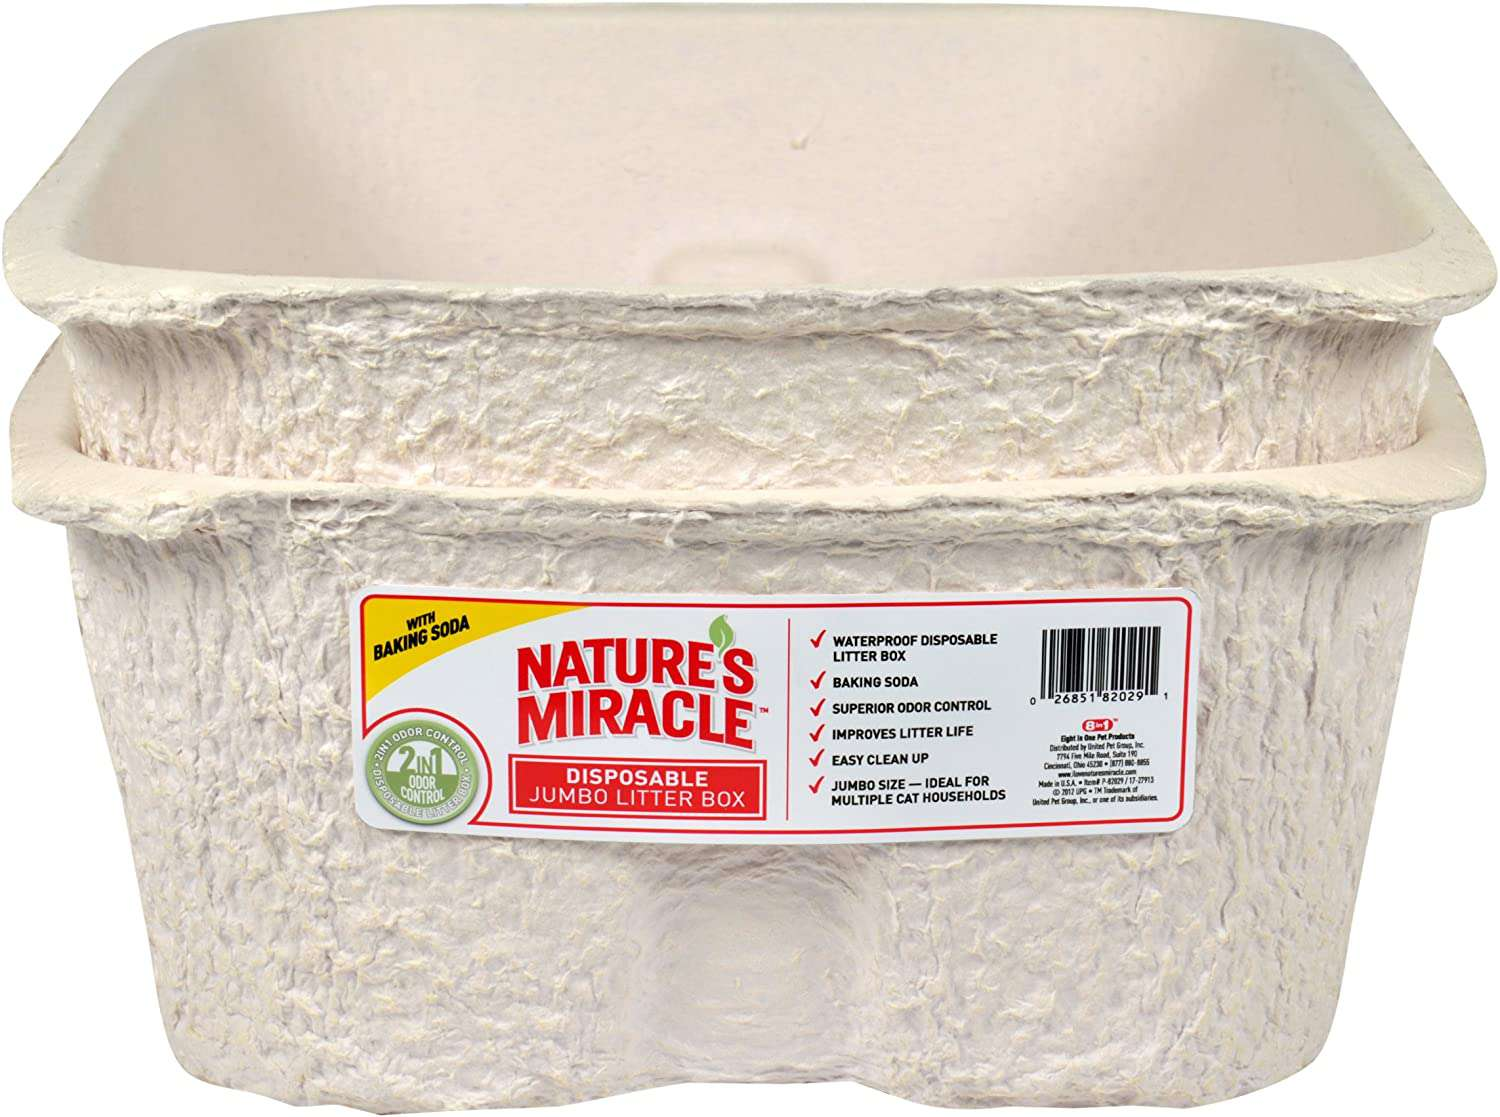 Nature's Miracle Disposable Litter Box